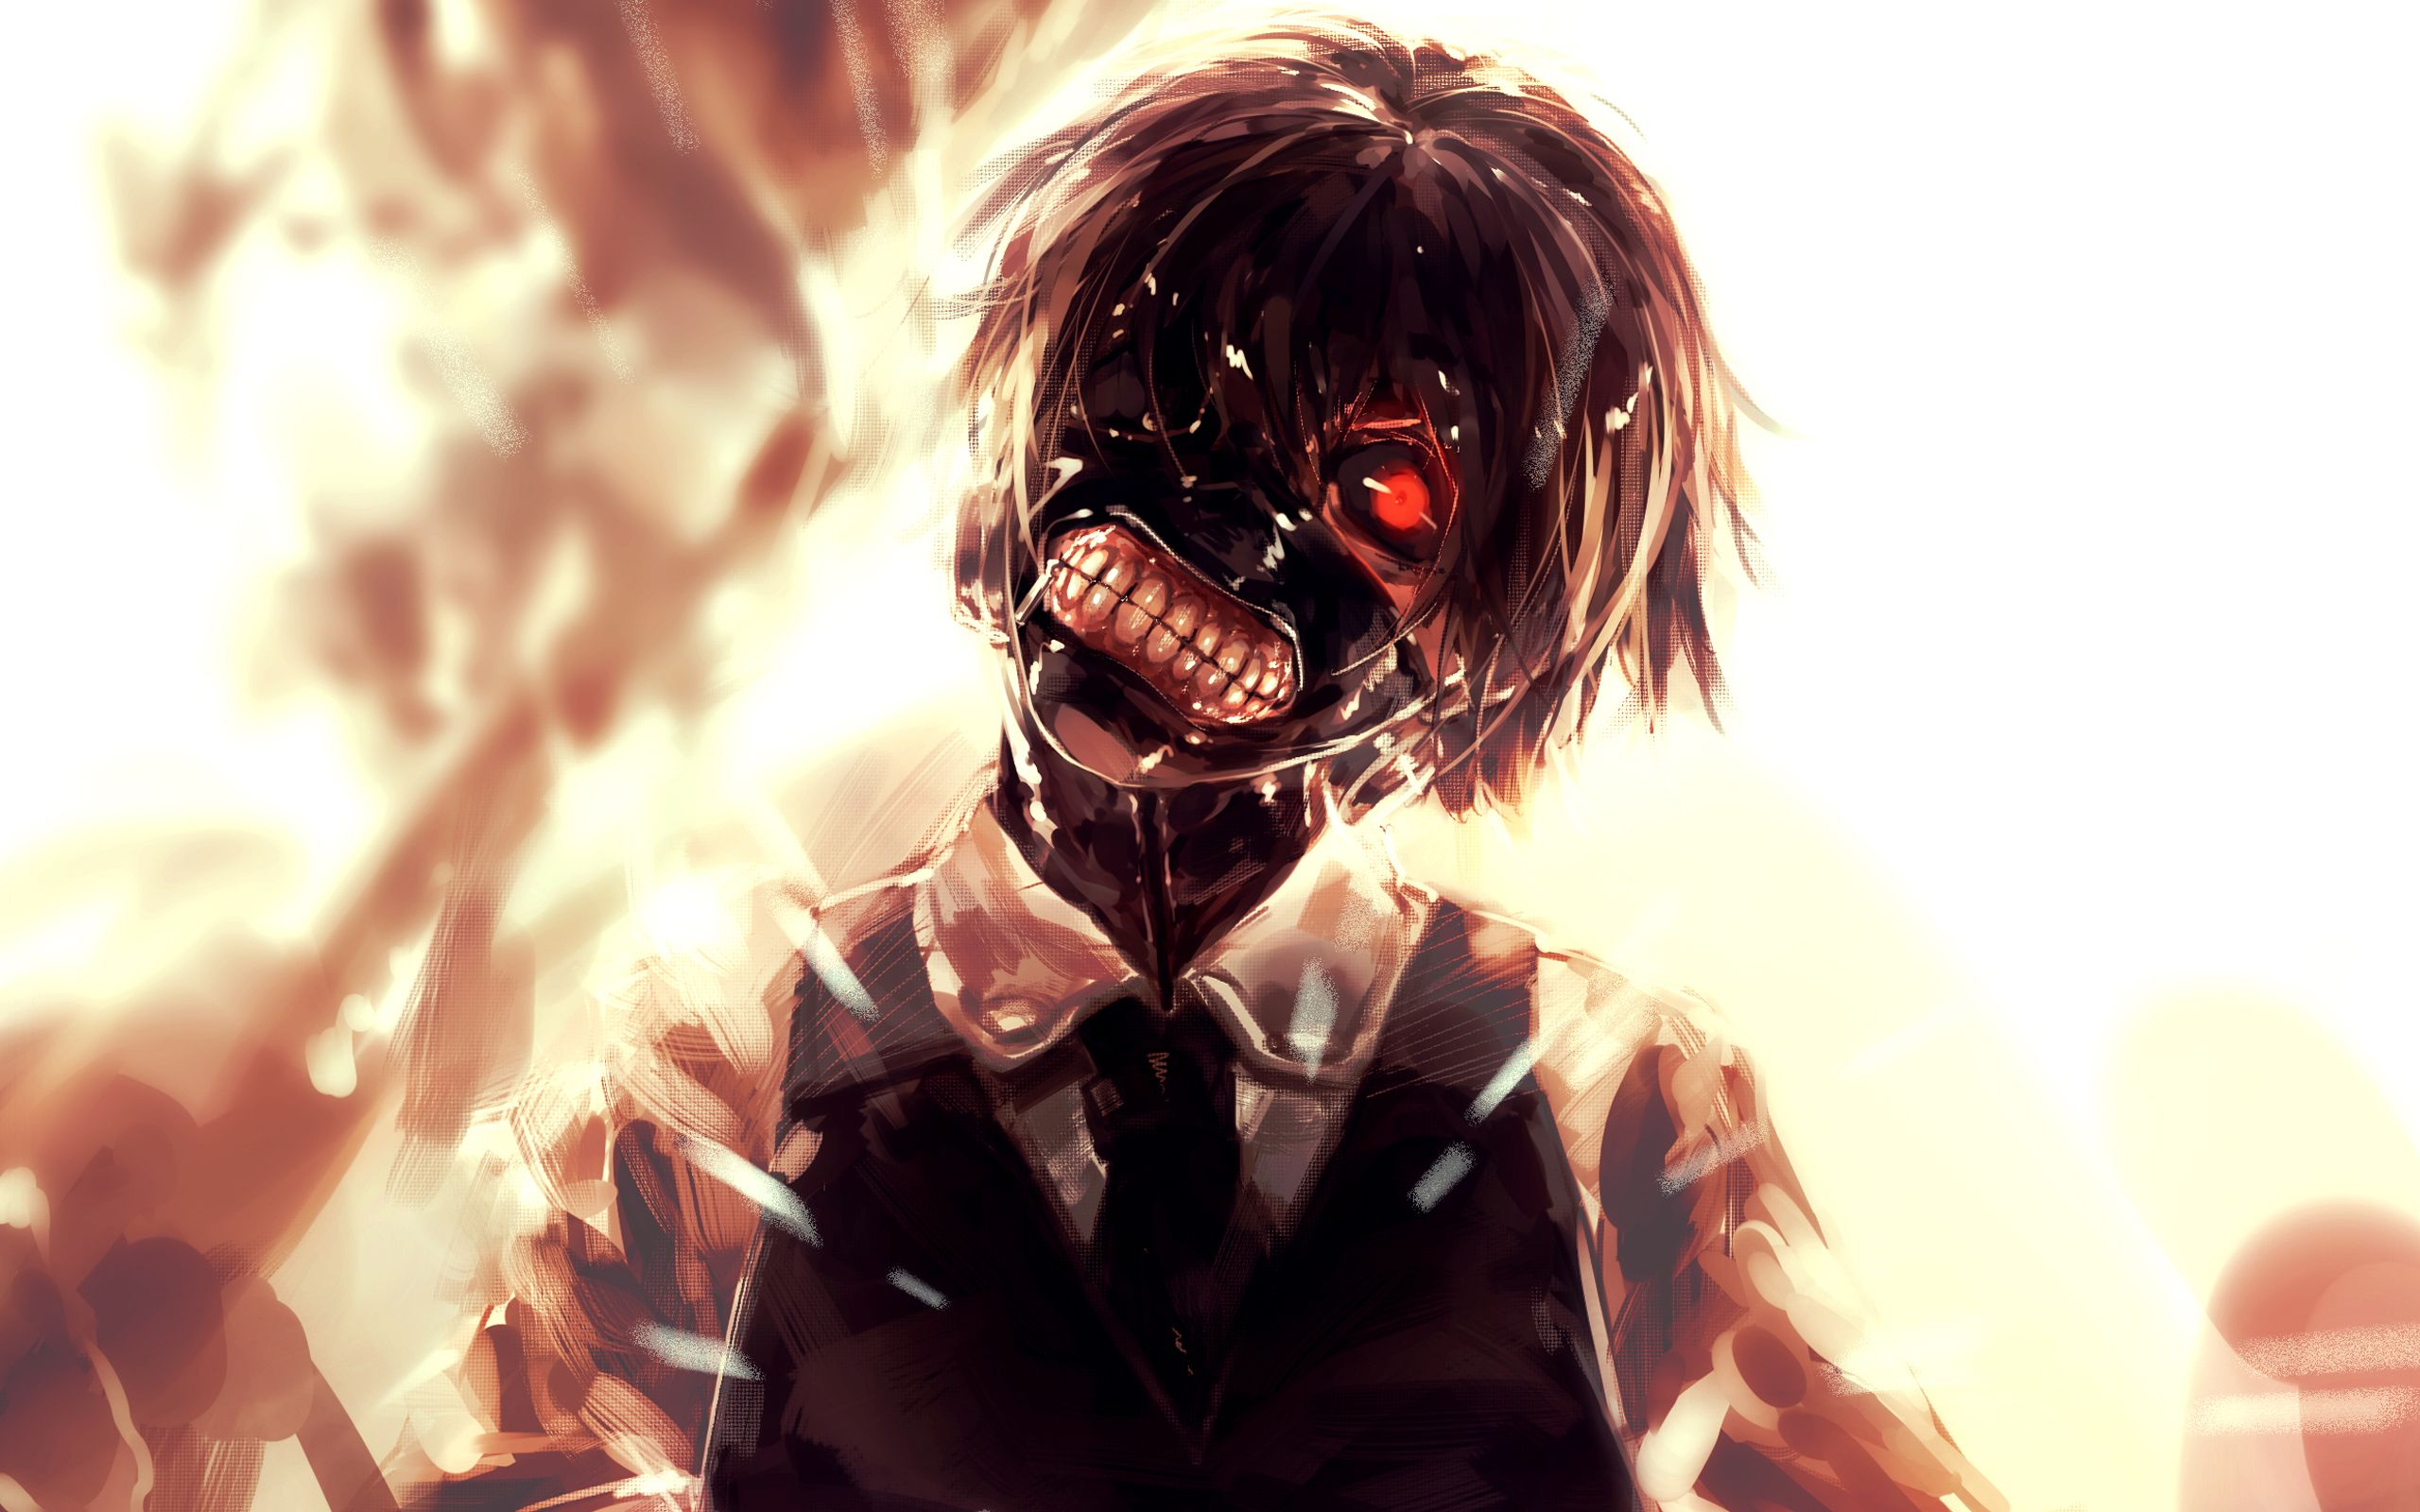 Great Wallpaper High Quality Tokyo Ghoul - 353b689aef62cee46cb7b7d666068bc6  Graphic_68148.jpg